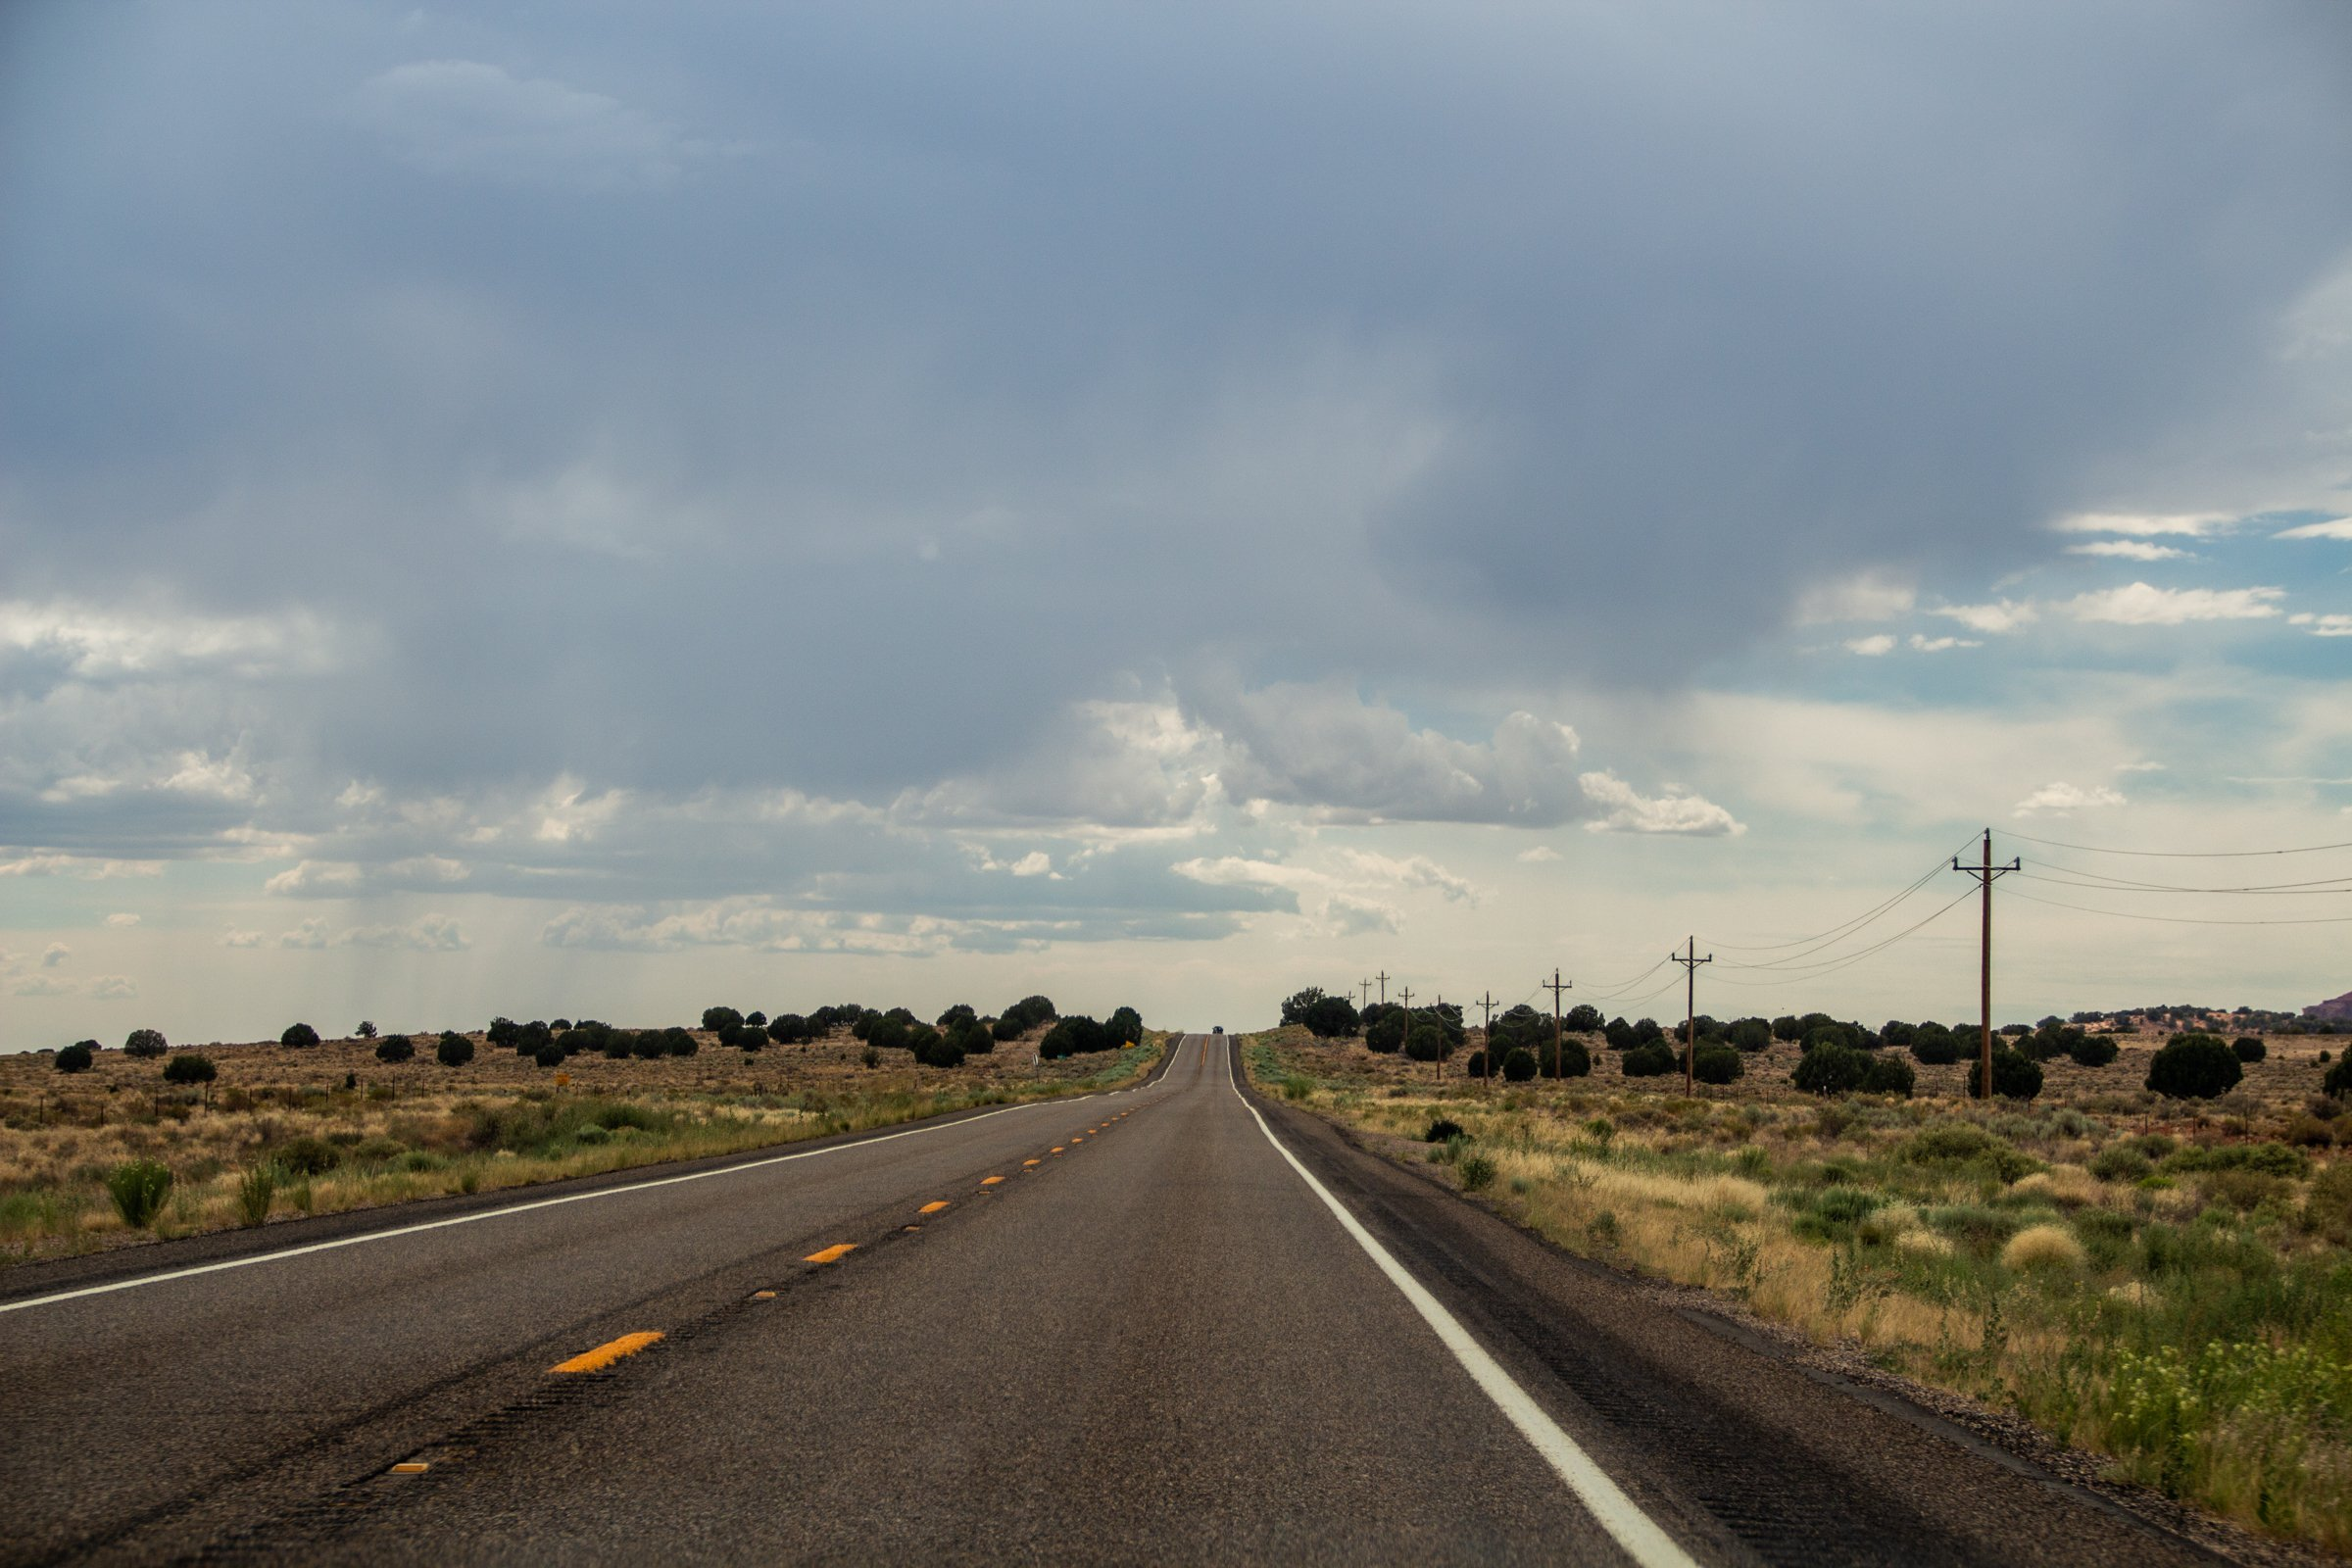 Empty Desert Road Under Cloudy Sky